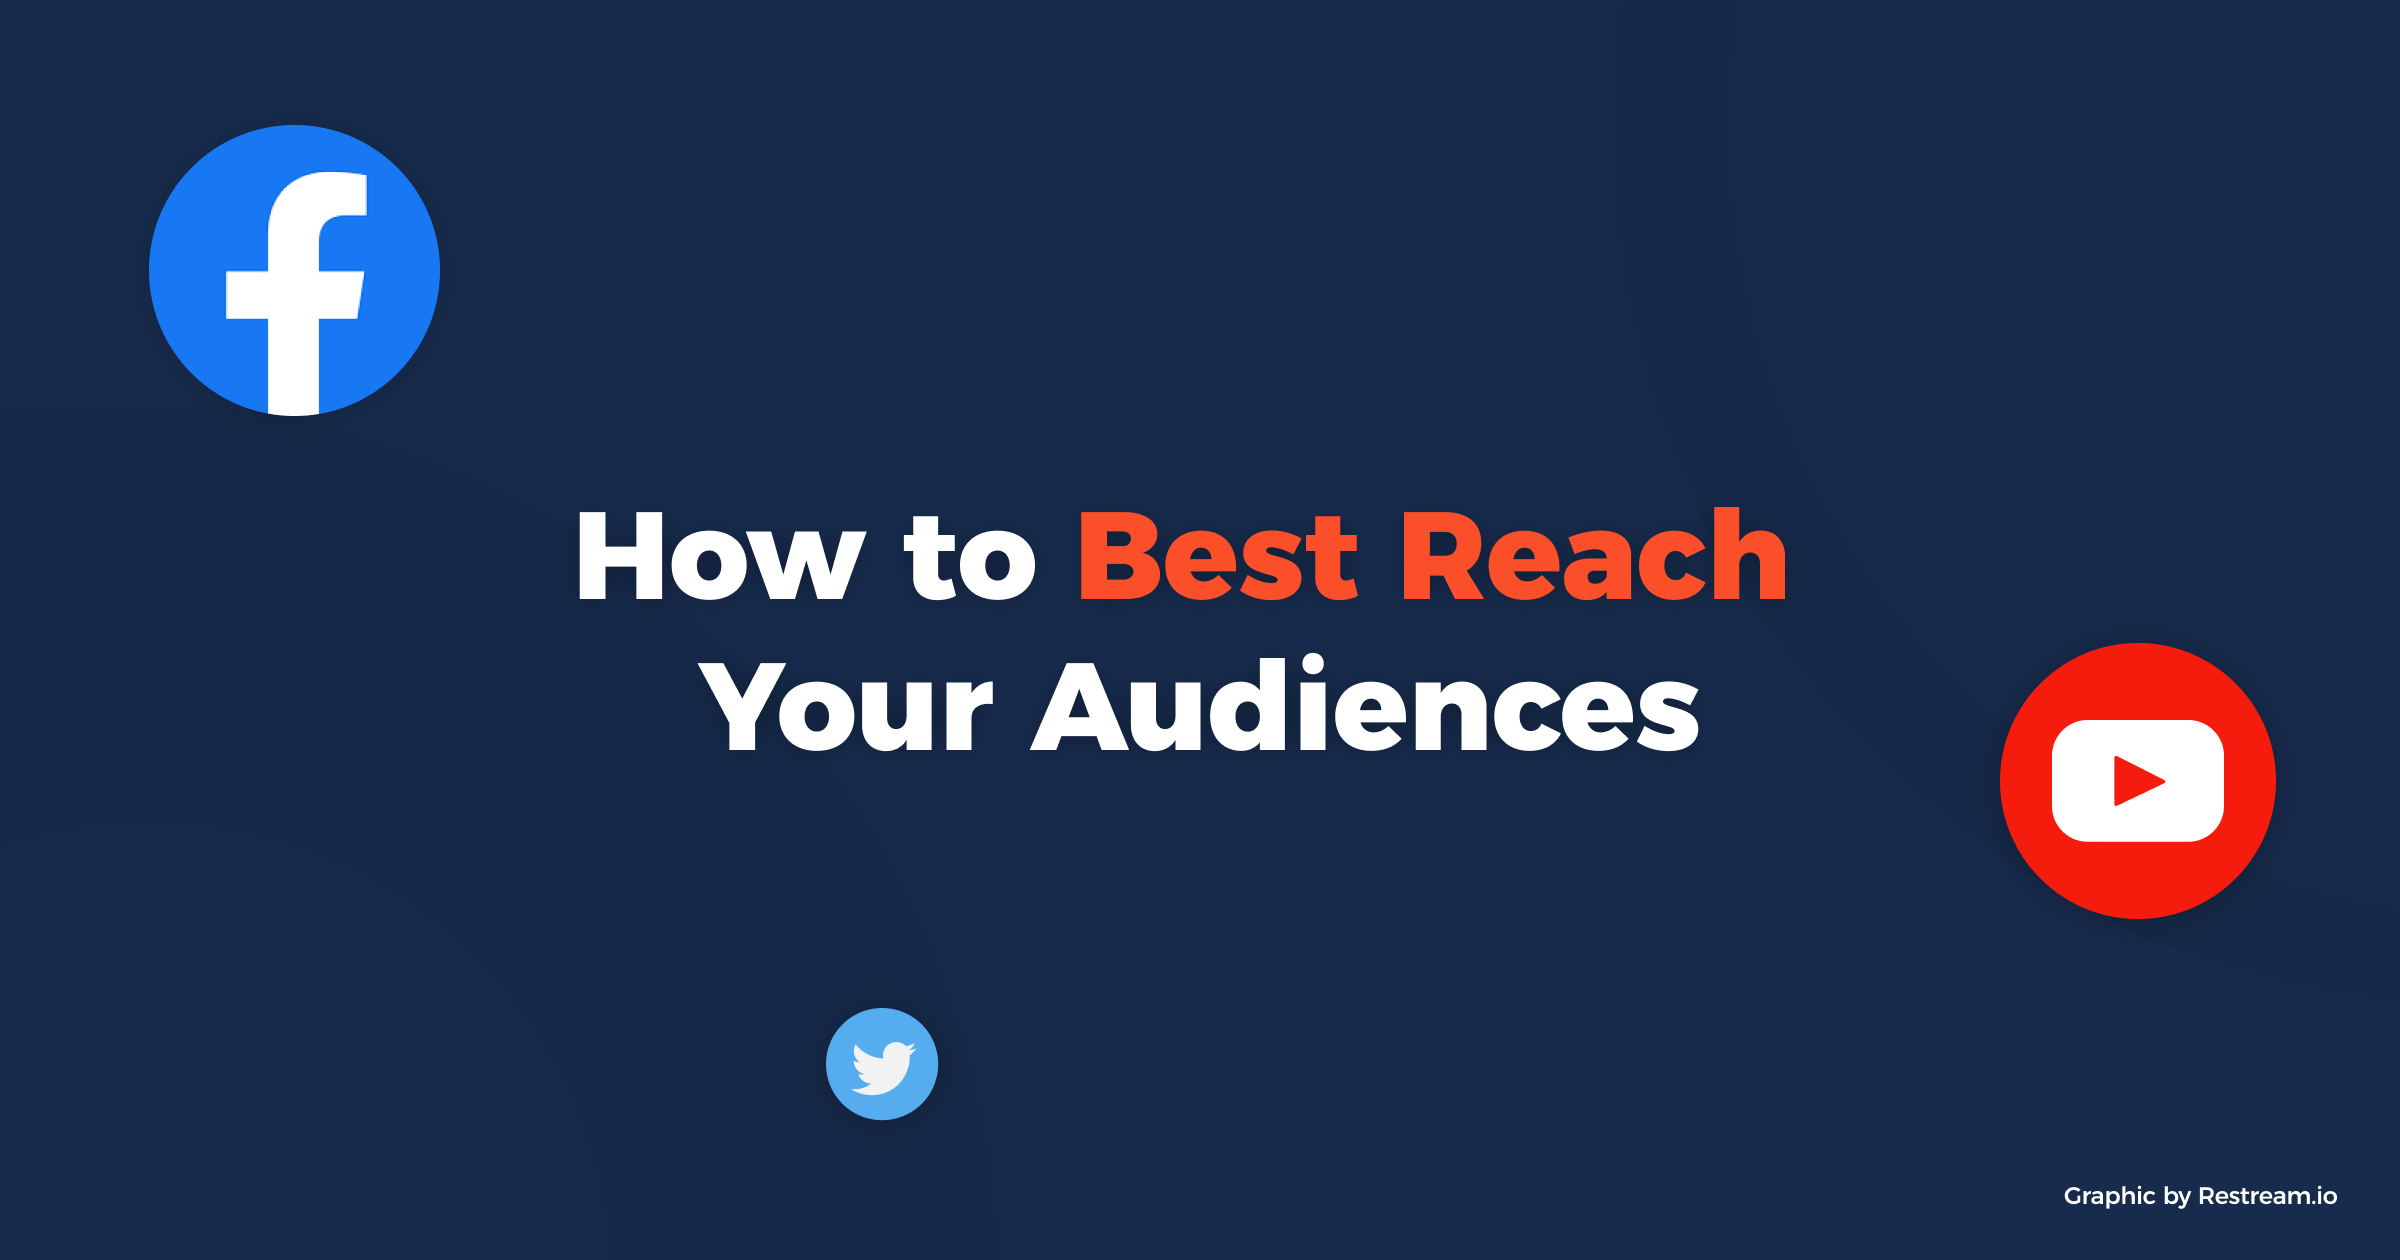 How to Best Reach Your Audiences